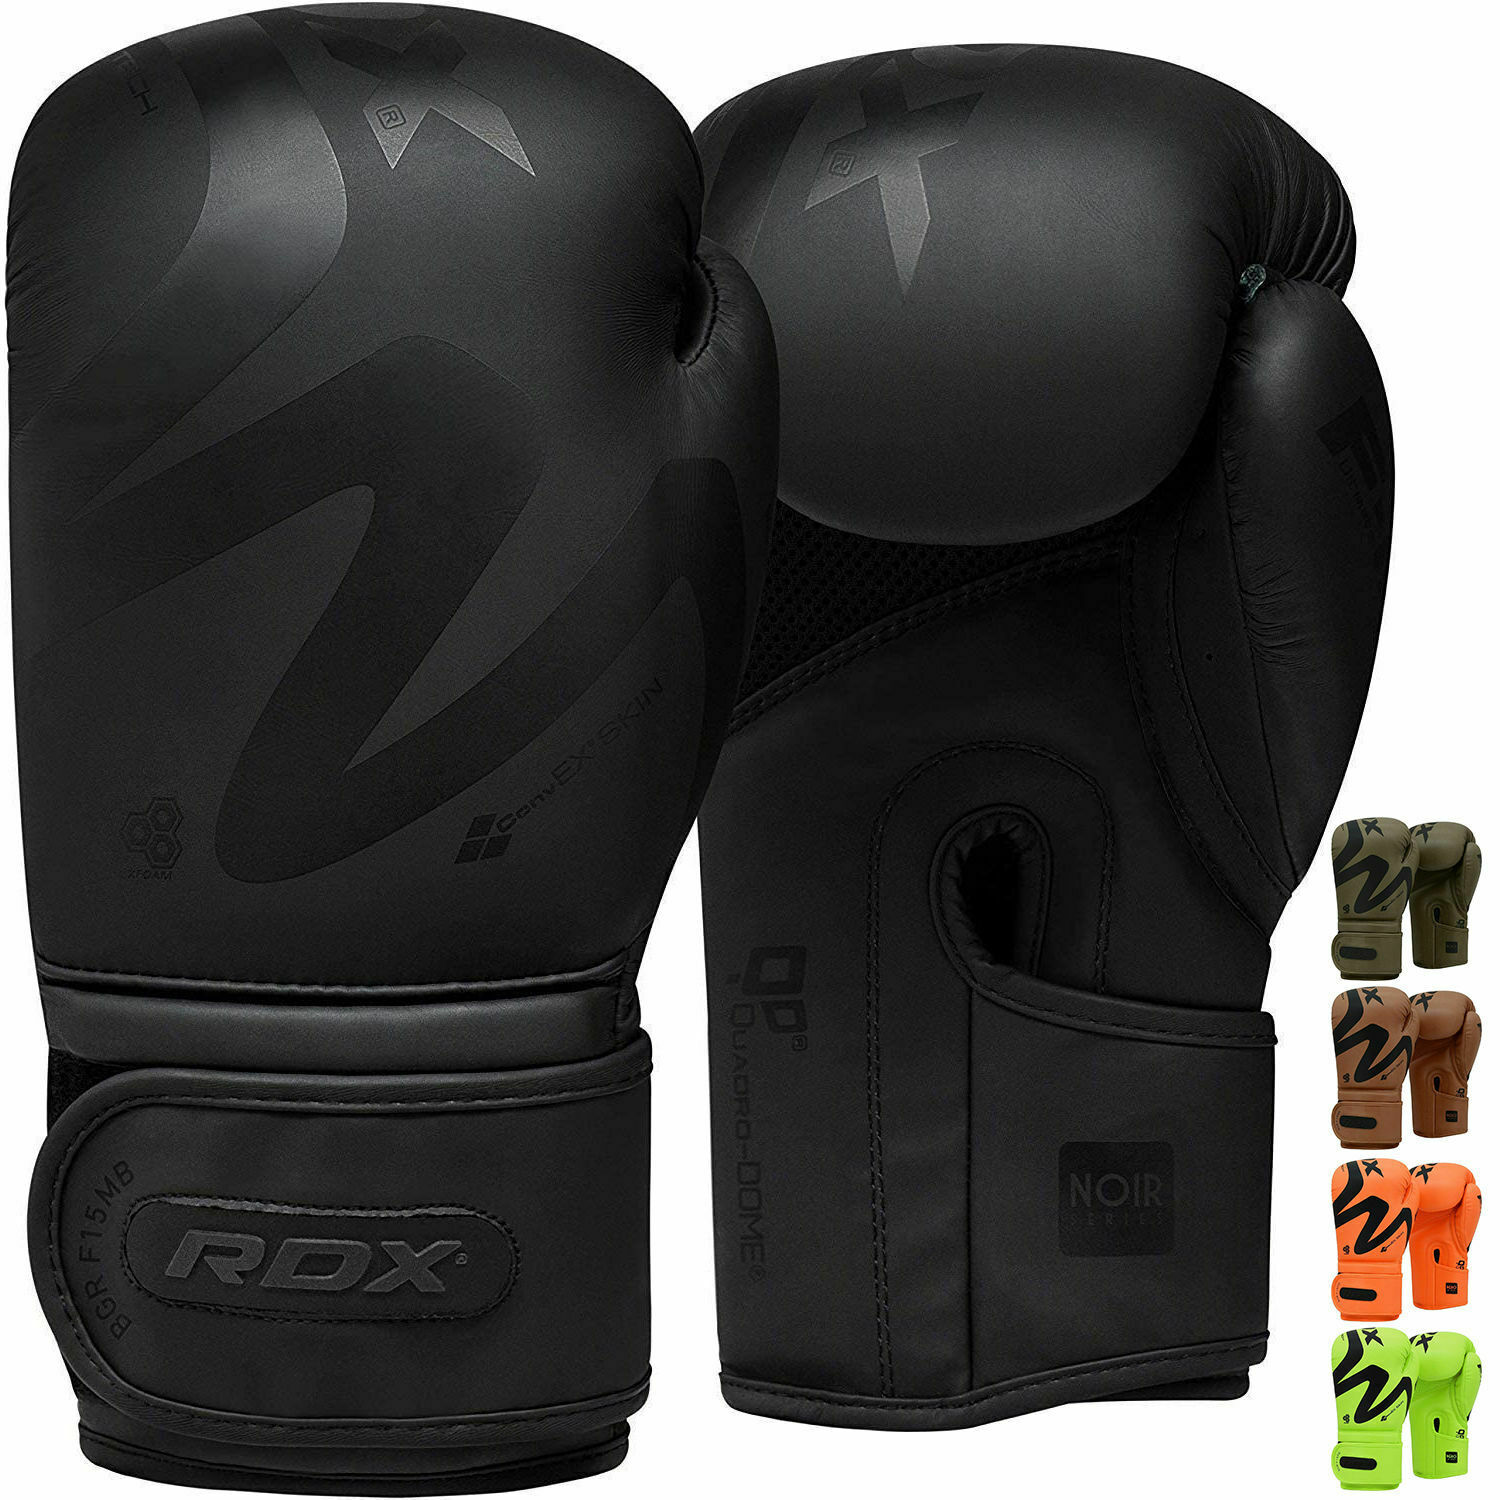 RDX Boxing Gloves Leather Training MMA Sparring Punch Bag Muay Thai Fight CA